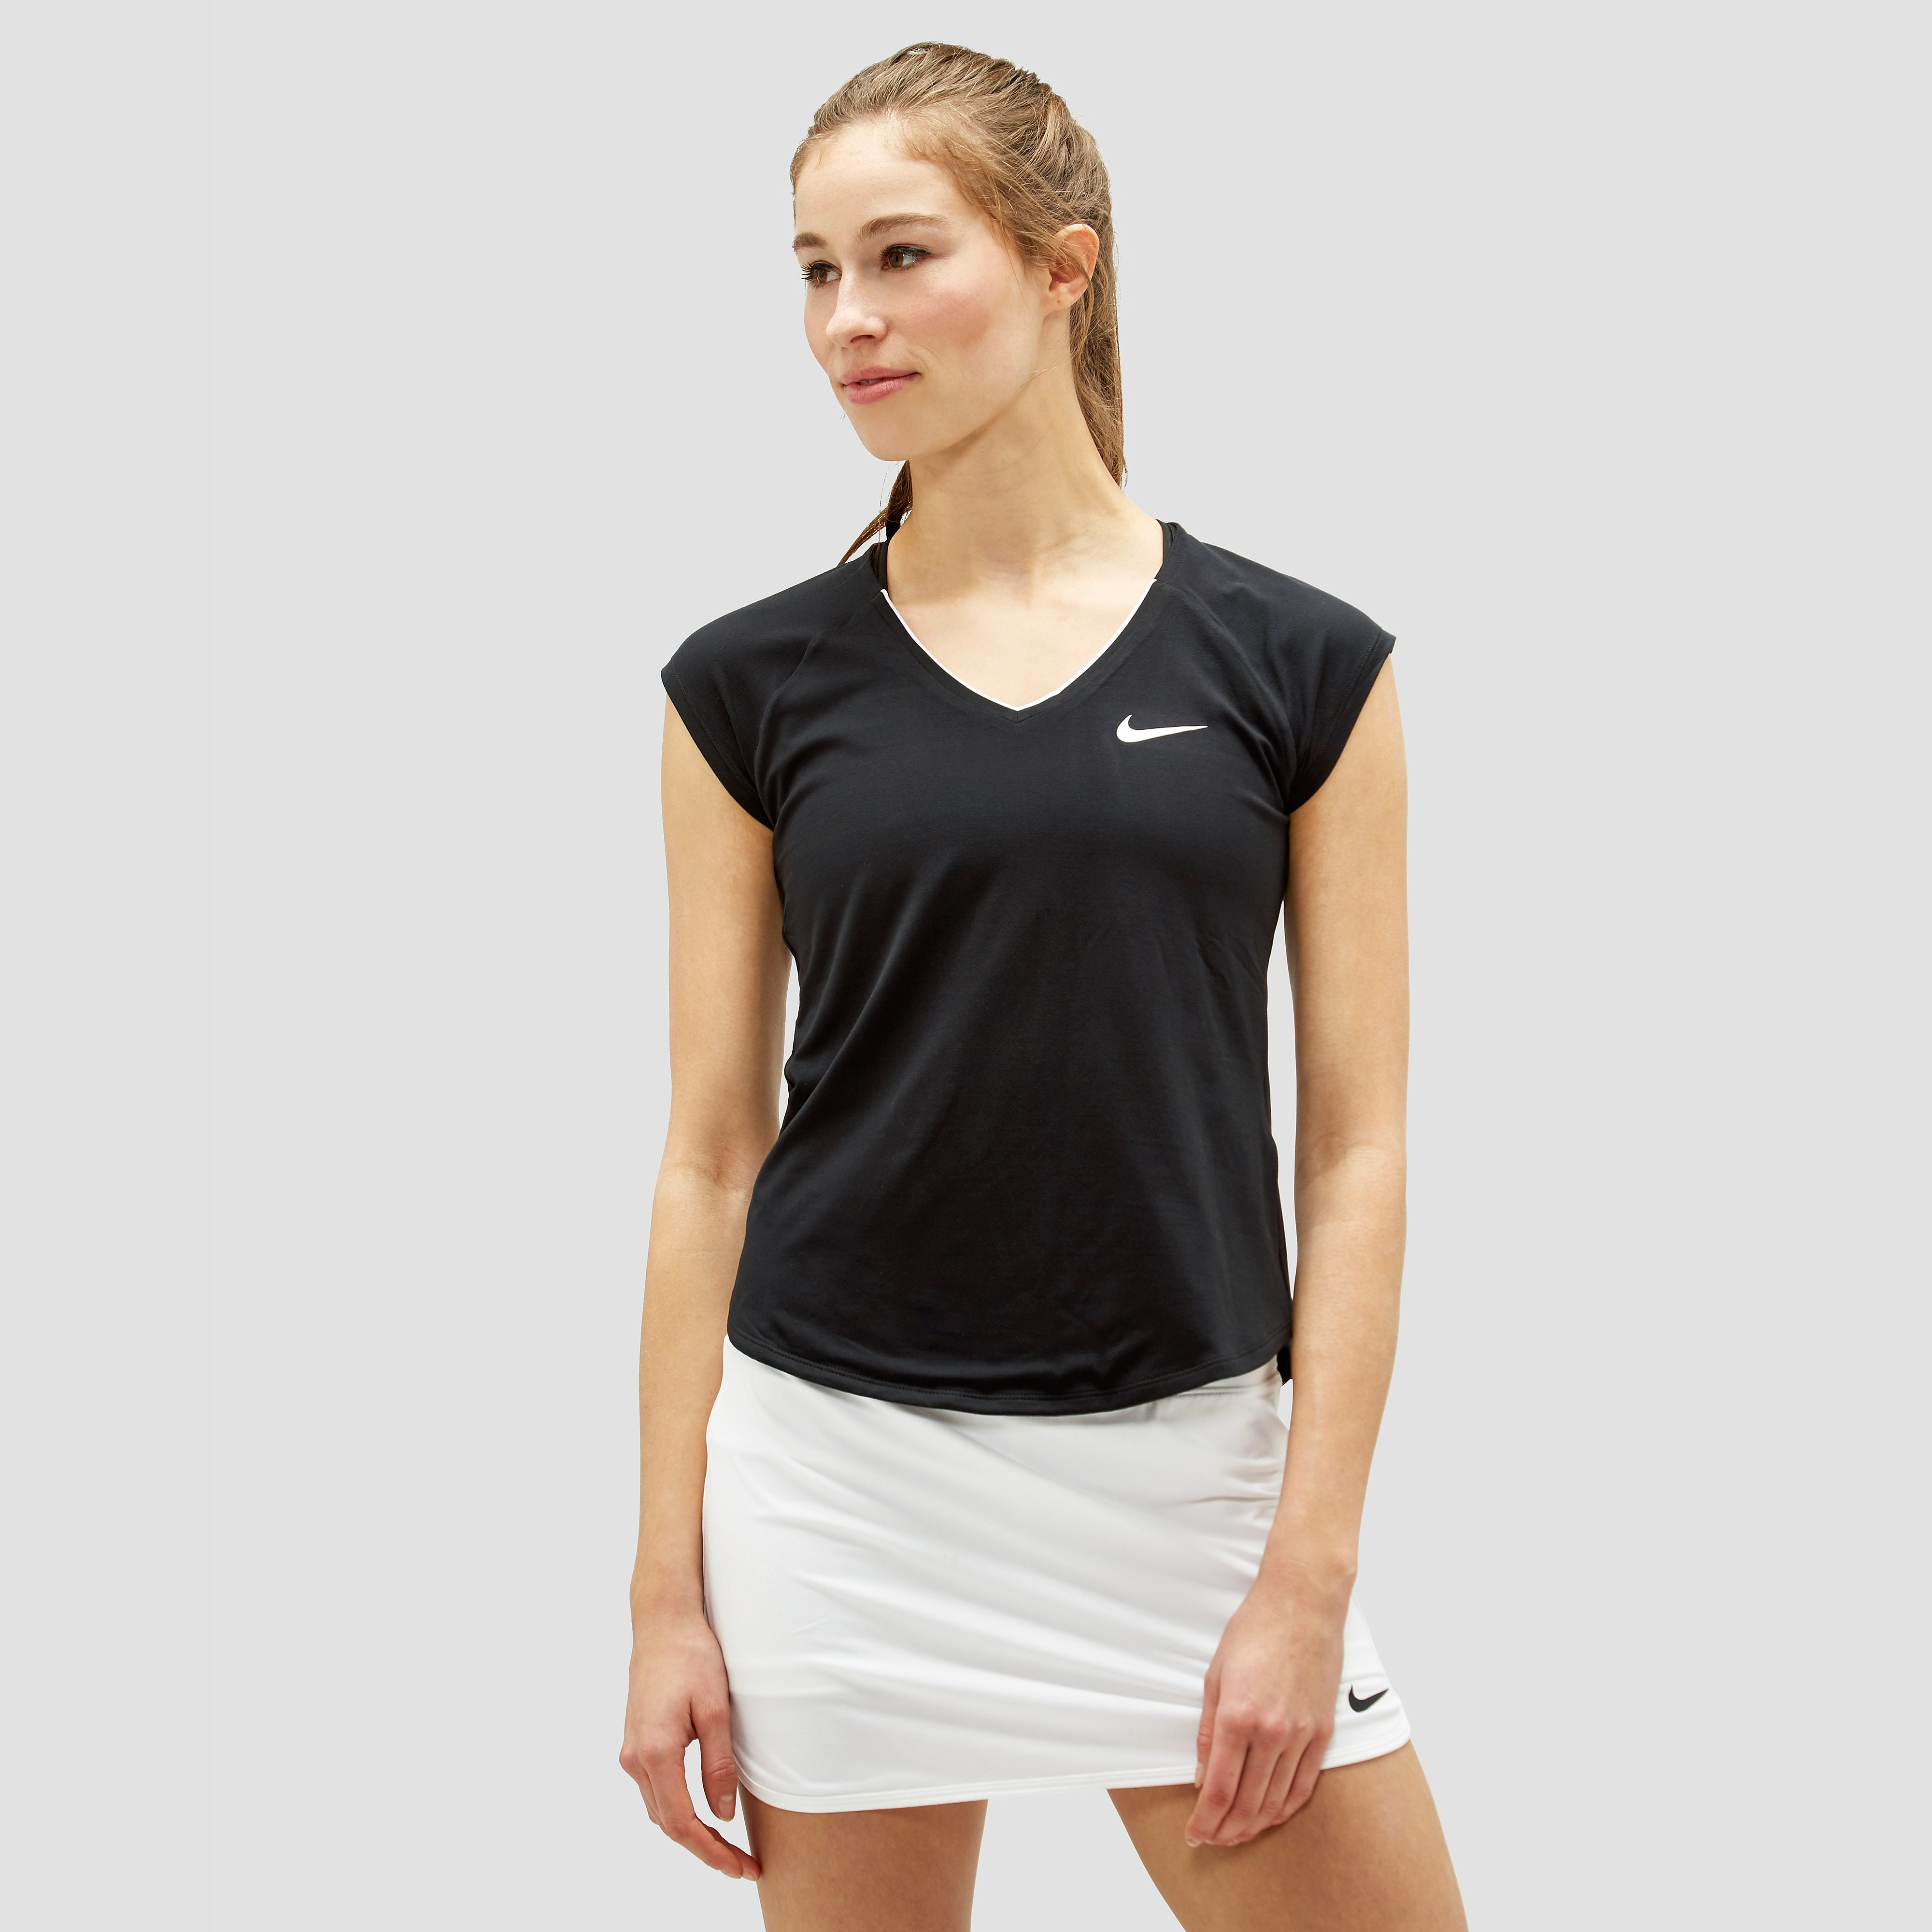 NIKE COURT PURE TENNISSHIRT ZWART DAMES